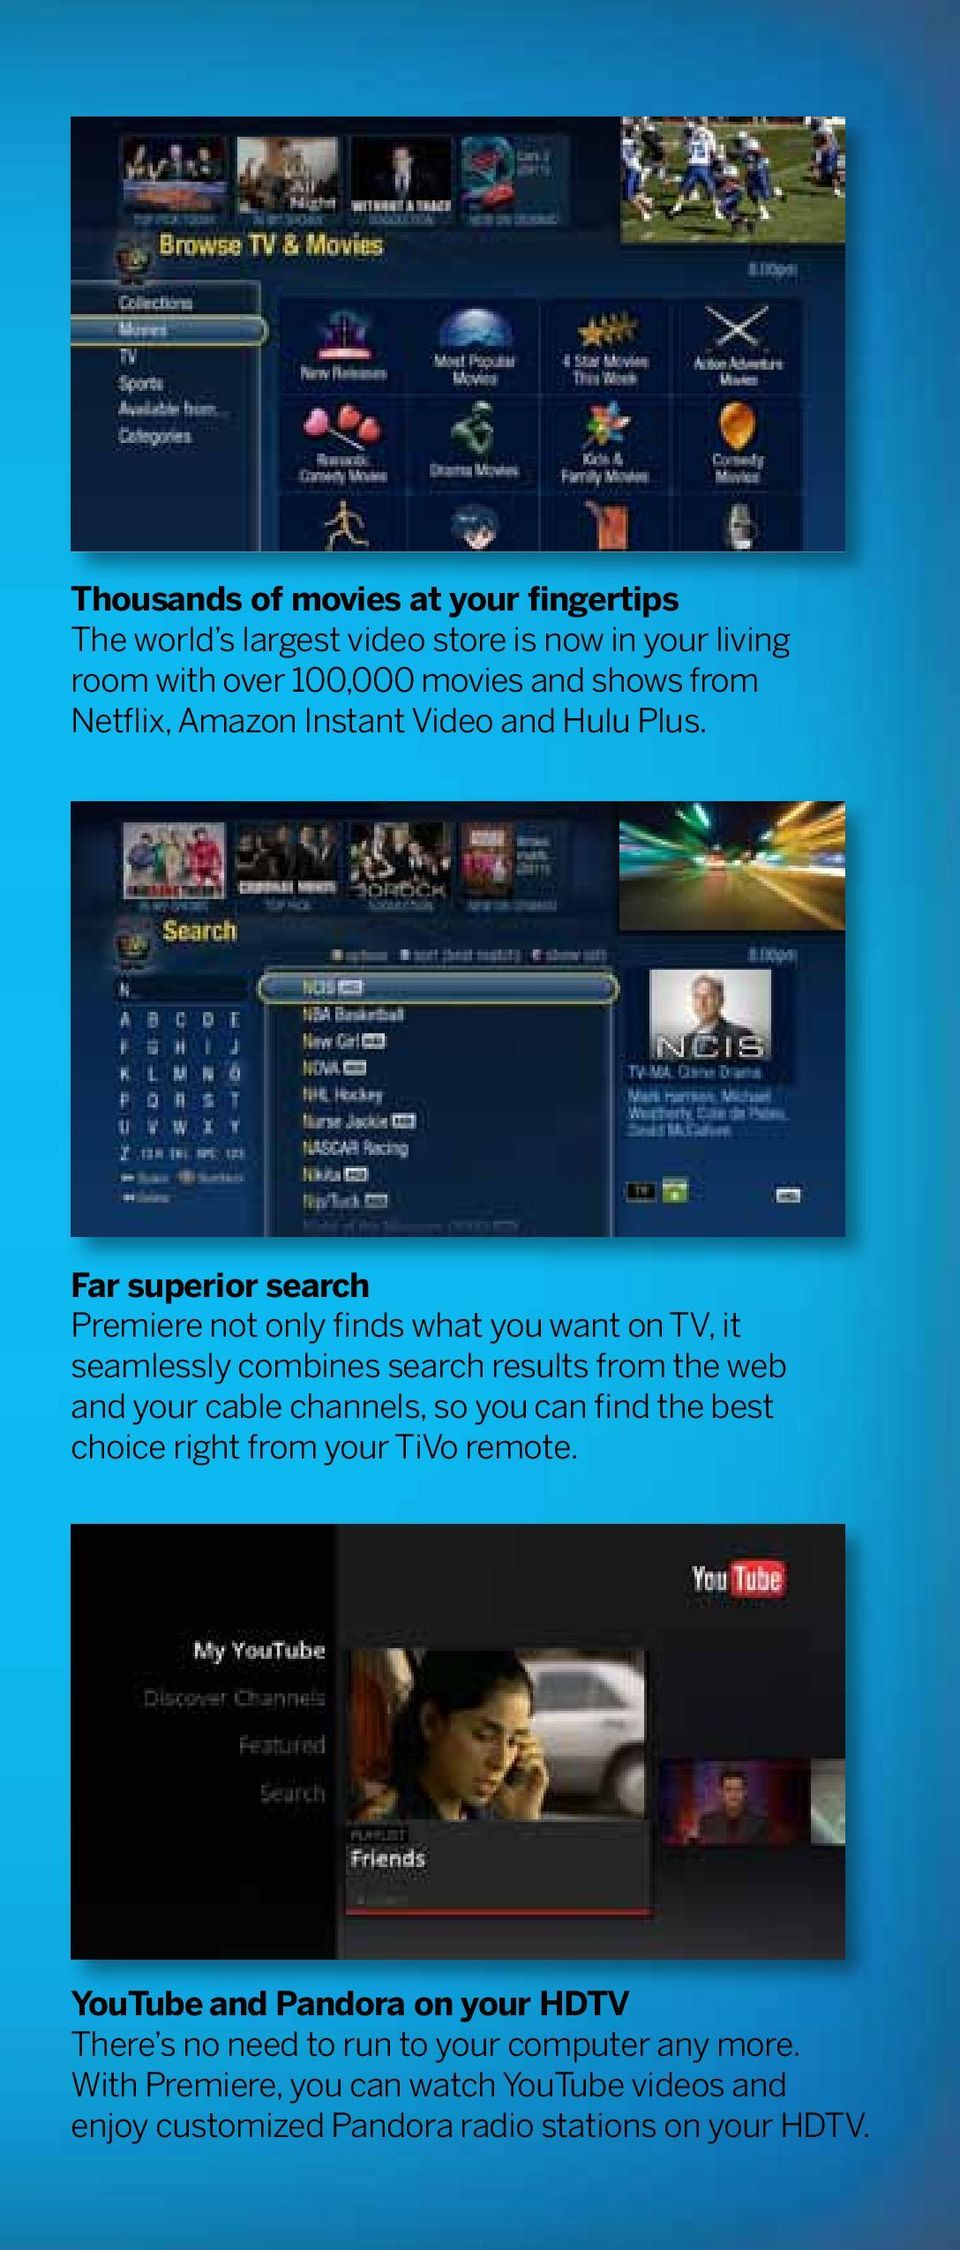 Far superior search Premiere not only finds what you want on TV, it seamlessly combines search results from the web and your cable channels,